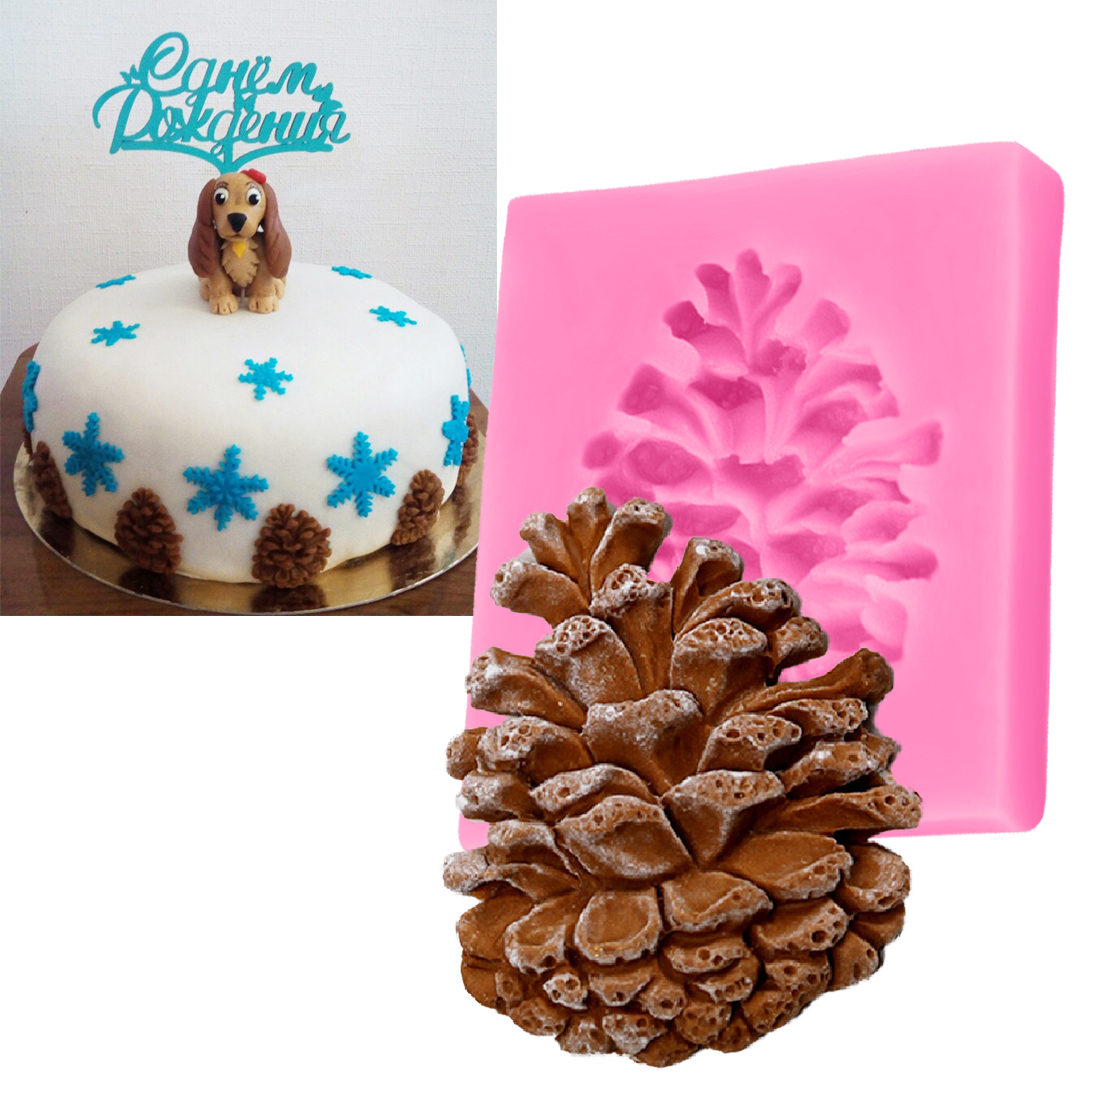 Stone House 3D Silicone Mould Handmade Soap Candy Mold Cake Decorating Tools